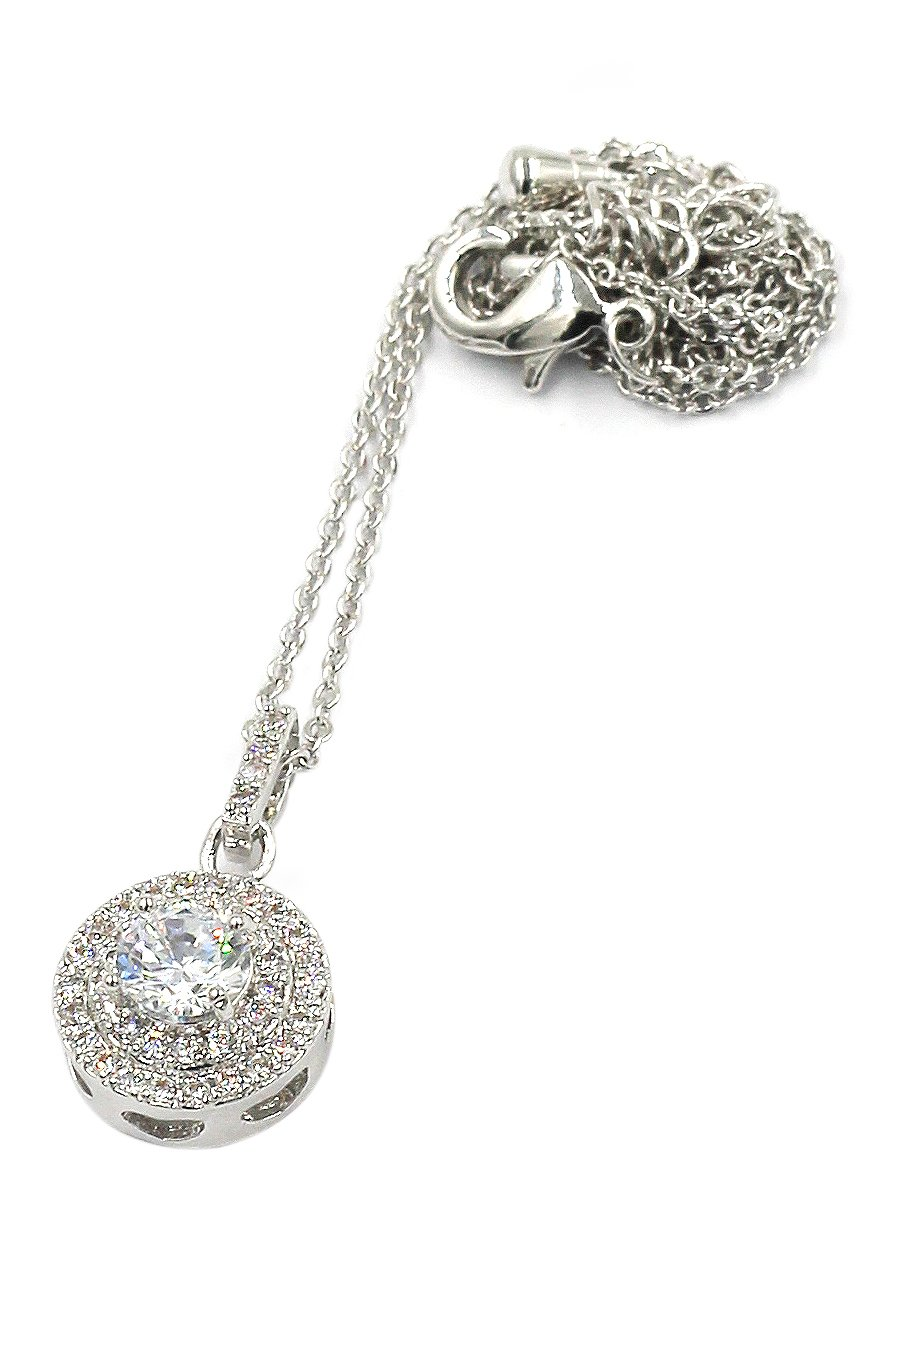 Shining crystal hollow heart Sterling Silver Chain silver necklace